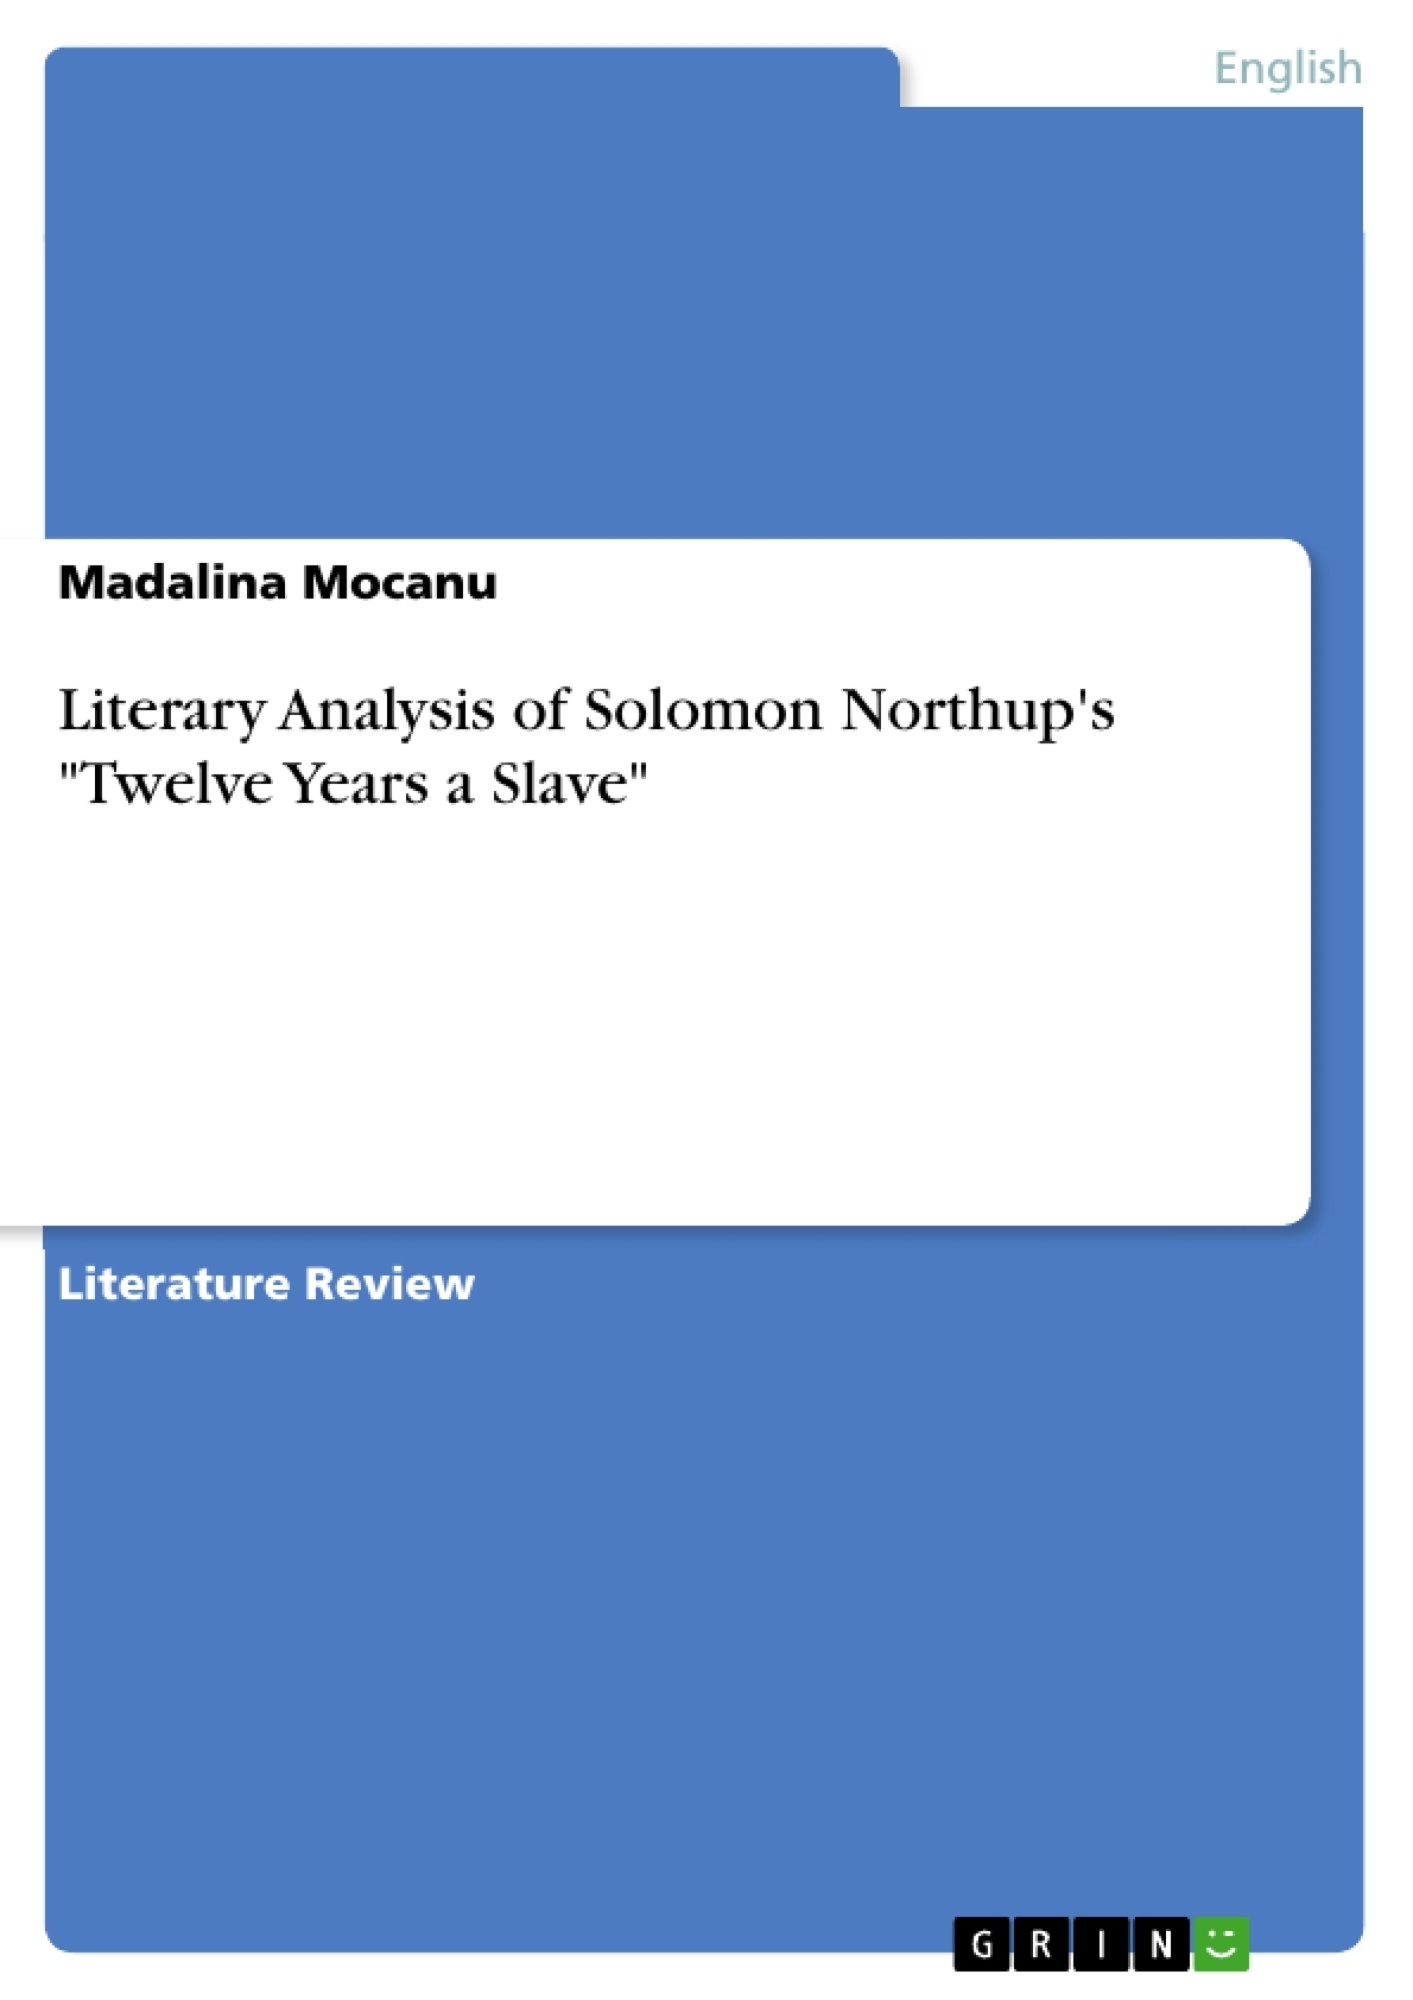 literary analysis of solomon northup s twelve years a slave upload your own papers earn money and win an iphone 7